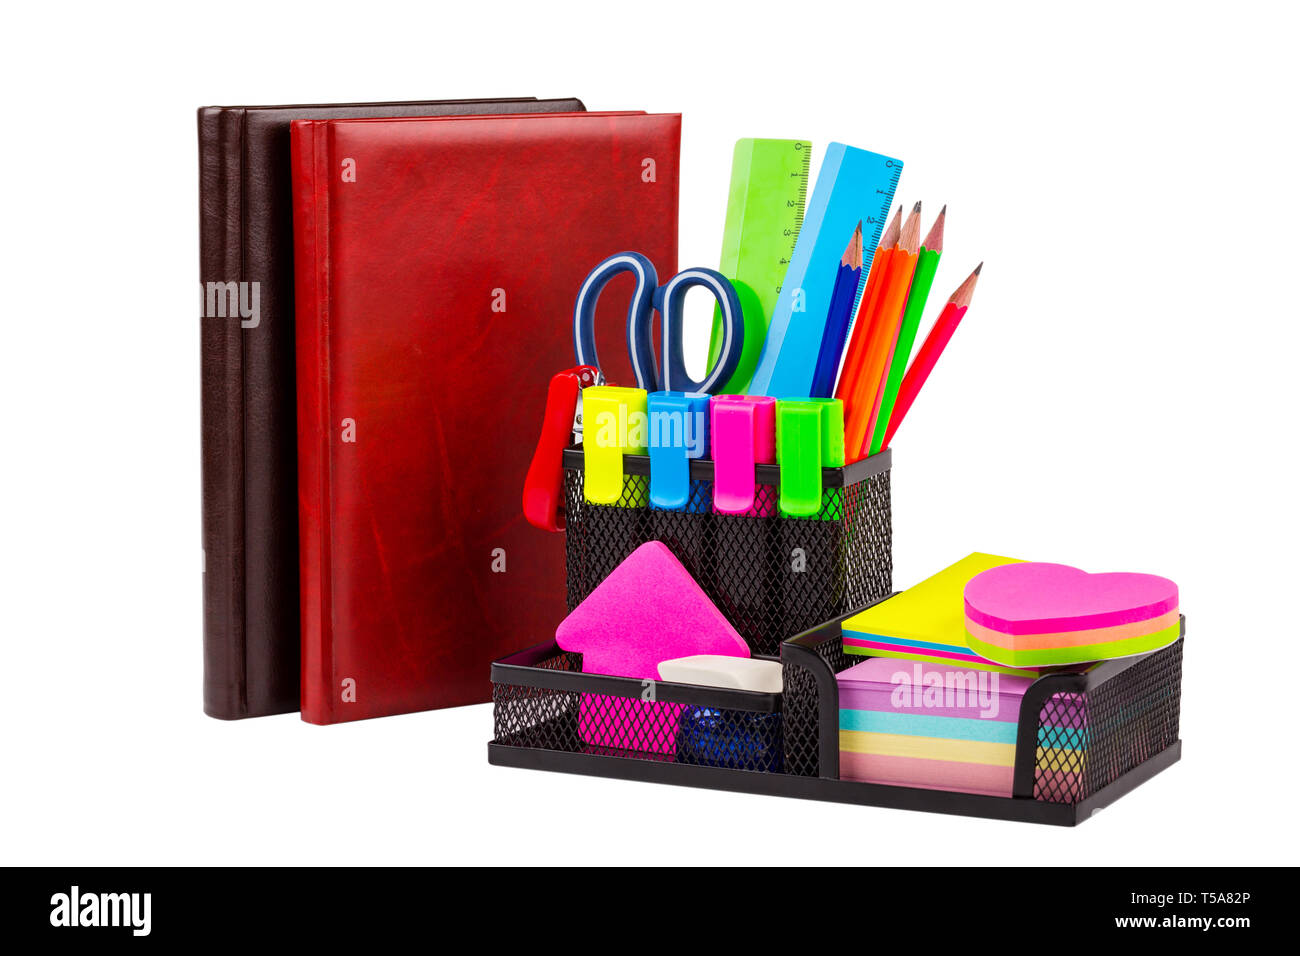 Stationery isolated on white. Notebooks, scissors, markers, pencils, rulers, stickers, stapler - Stock Image